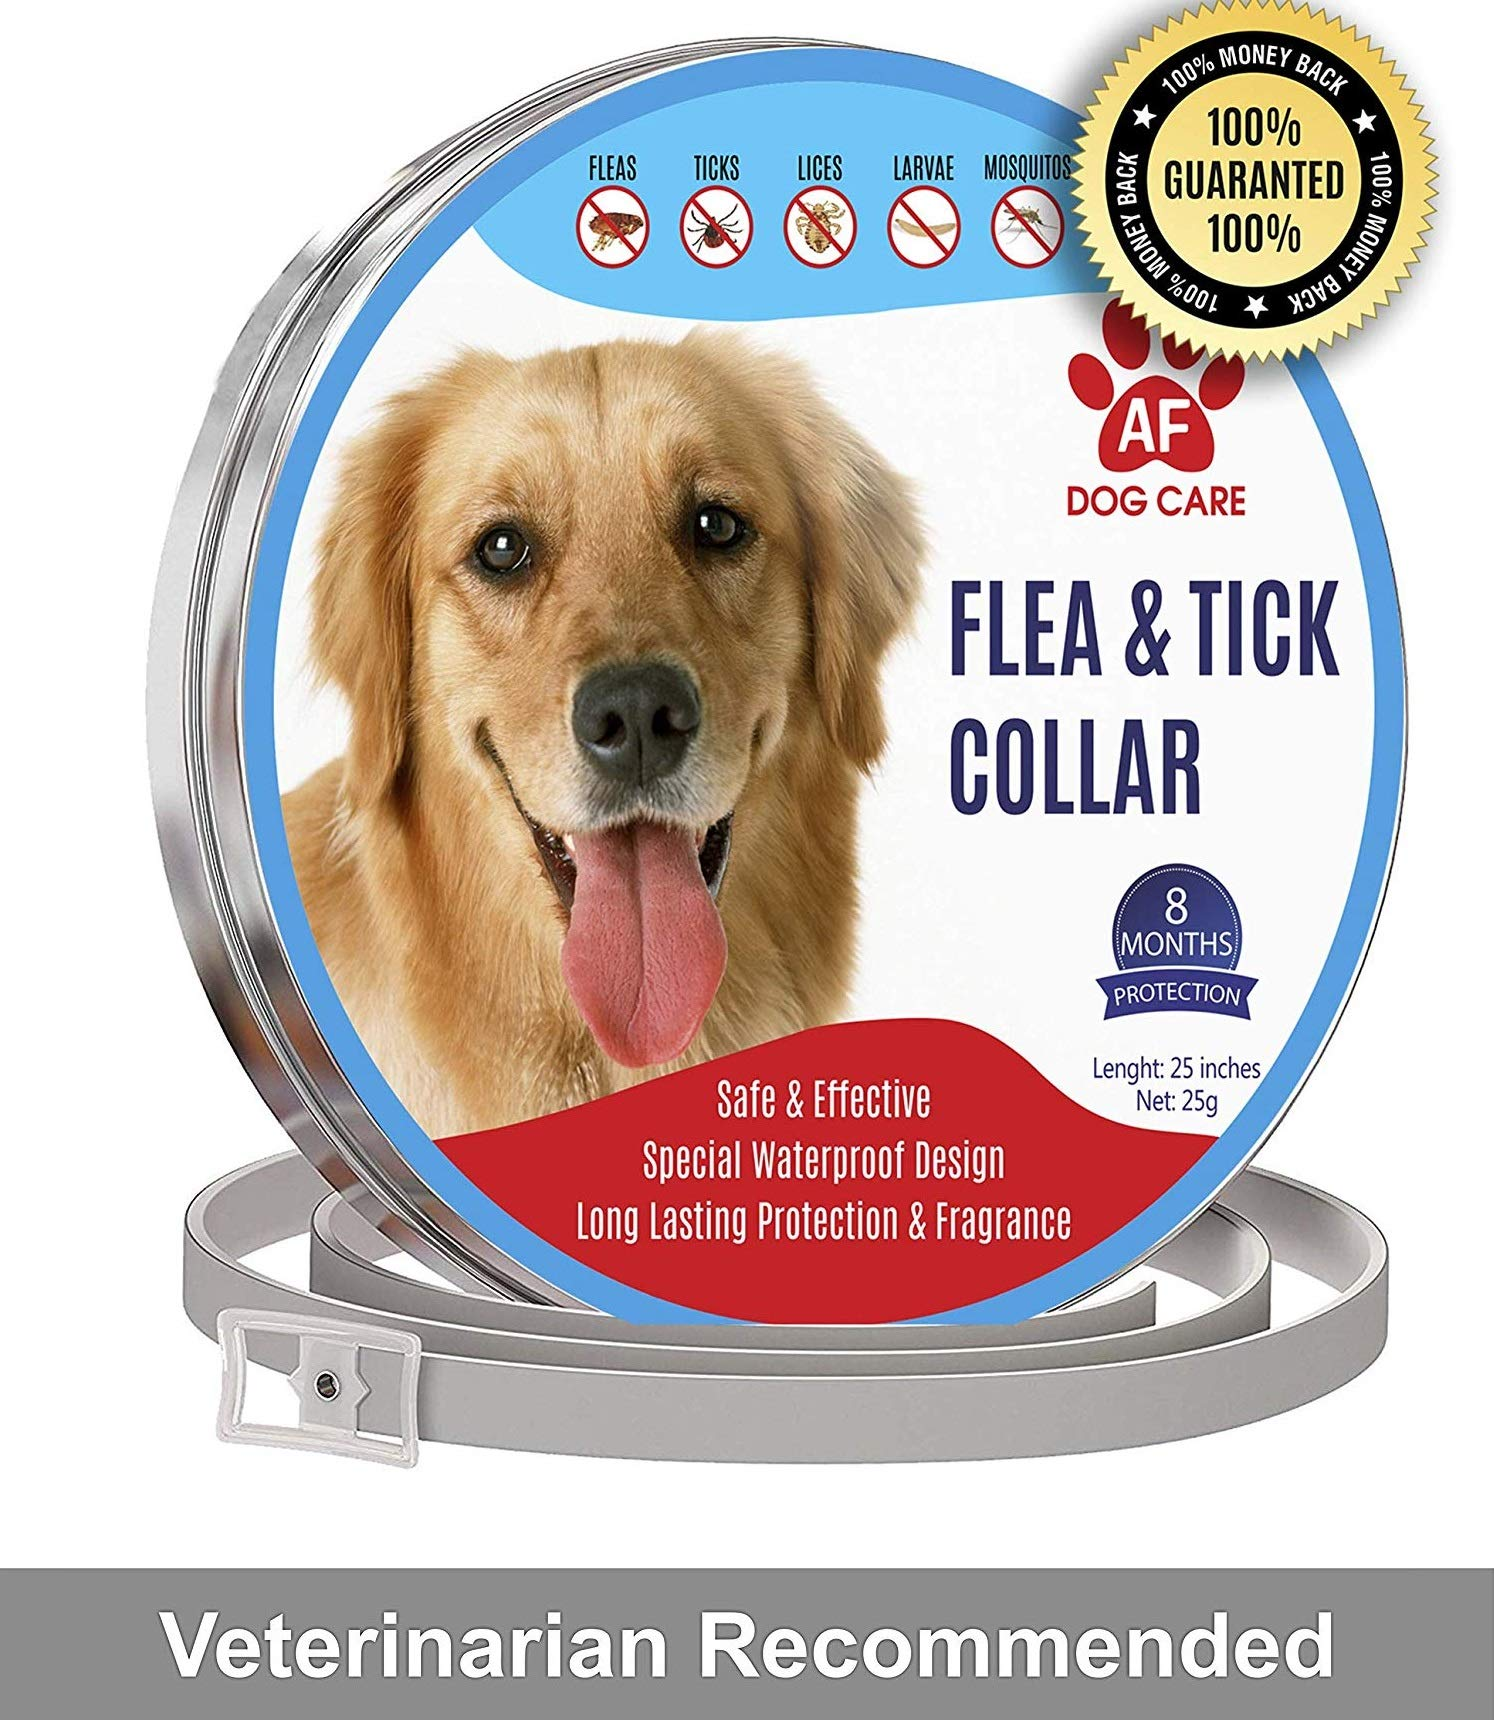 AF Dog Flea and Tick Control Collar - 8 Months Flea and Tick Control for Dogs - Natural, Herbal, Non-Toxic Dog Flea Treatment - Waterproof Protection and Adjustable Best Flea Collar for Dogs by AF